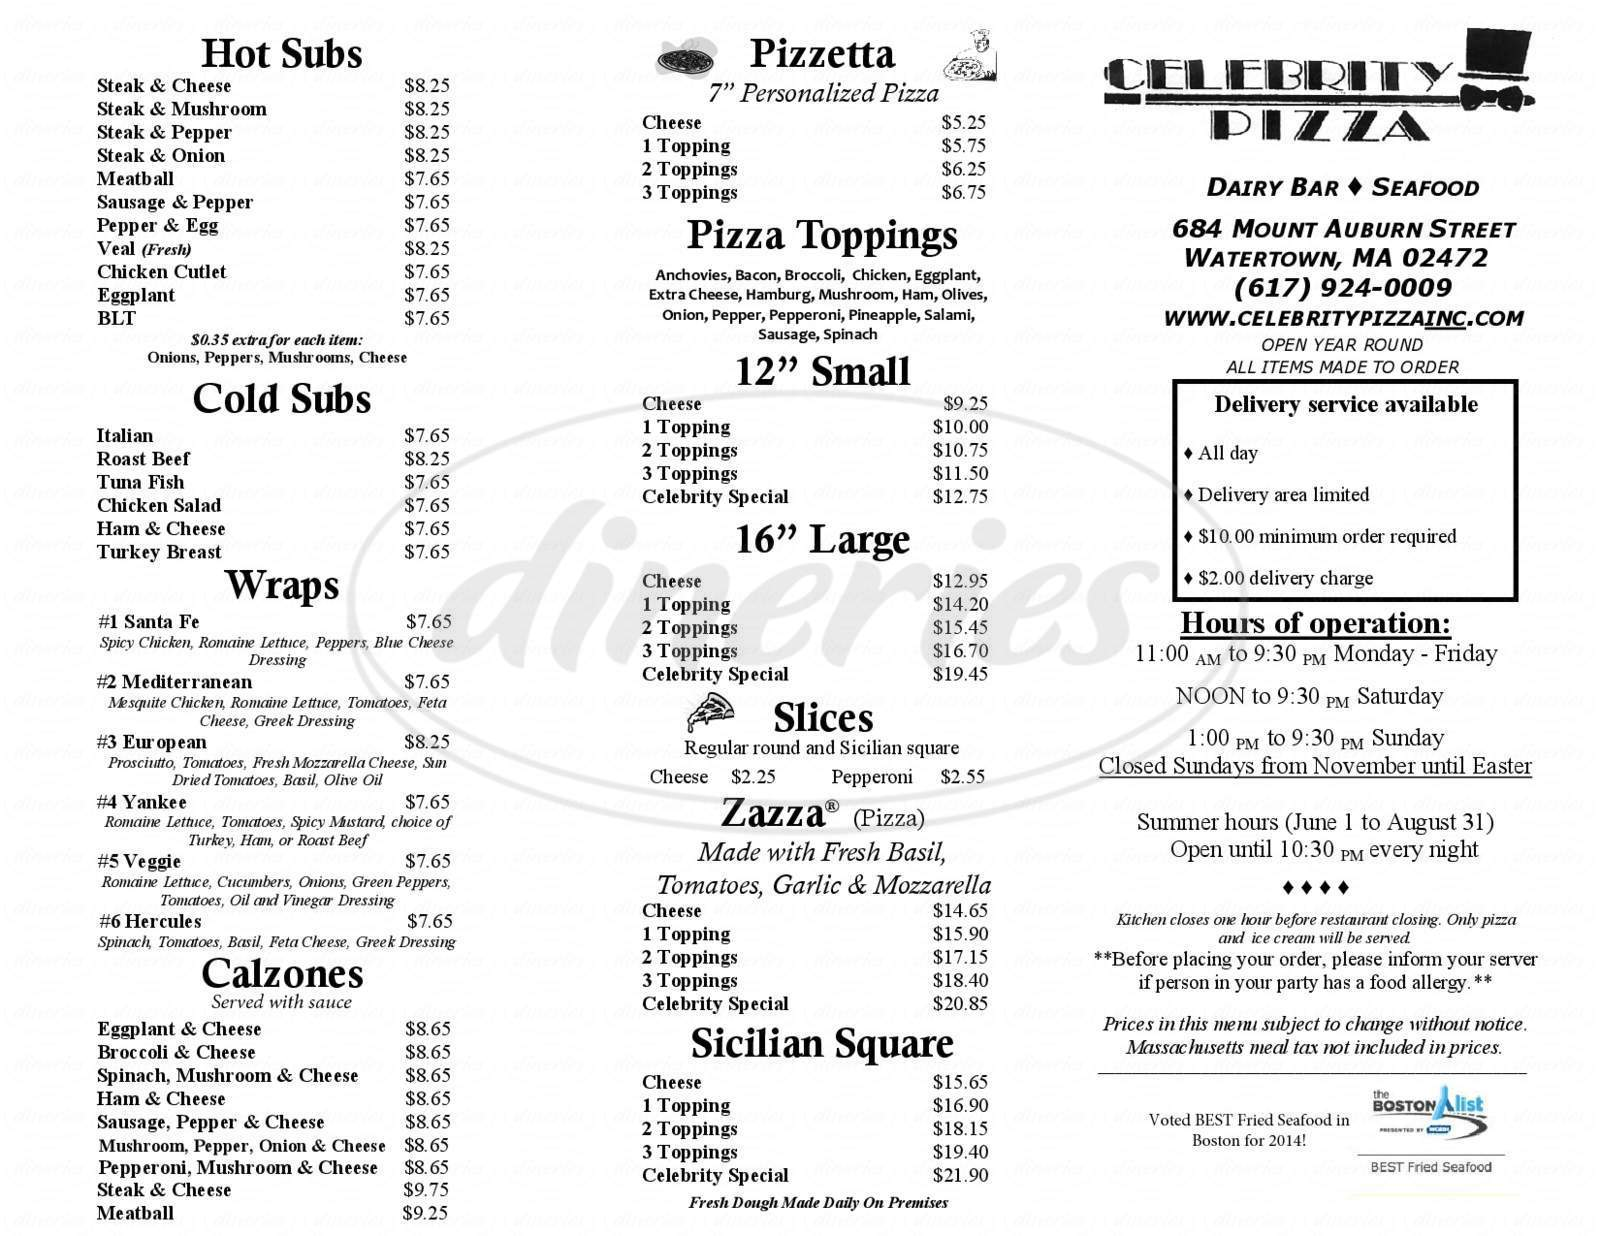 menu for Celebrity Pizza & Dairy Bar